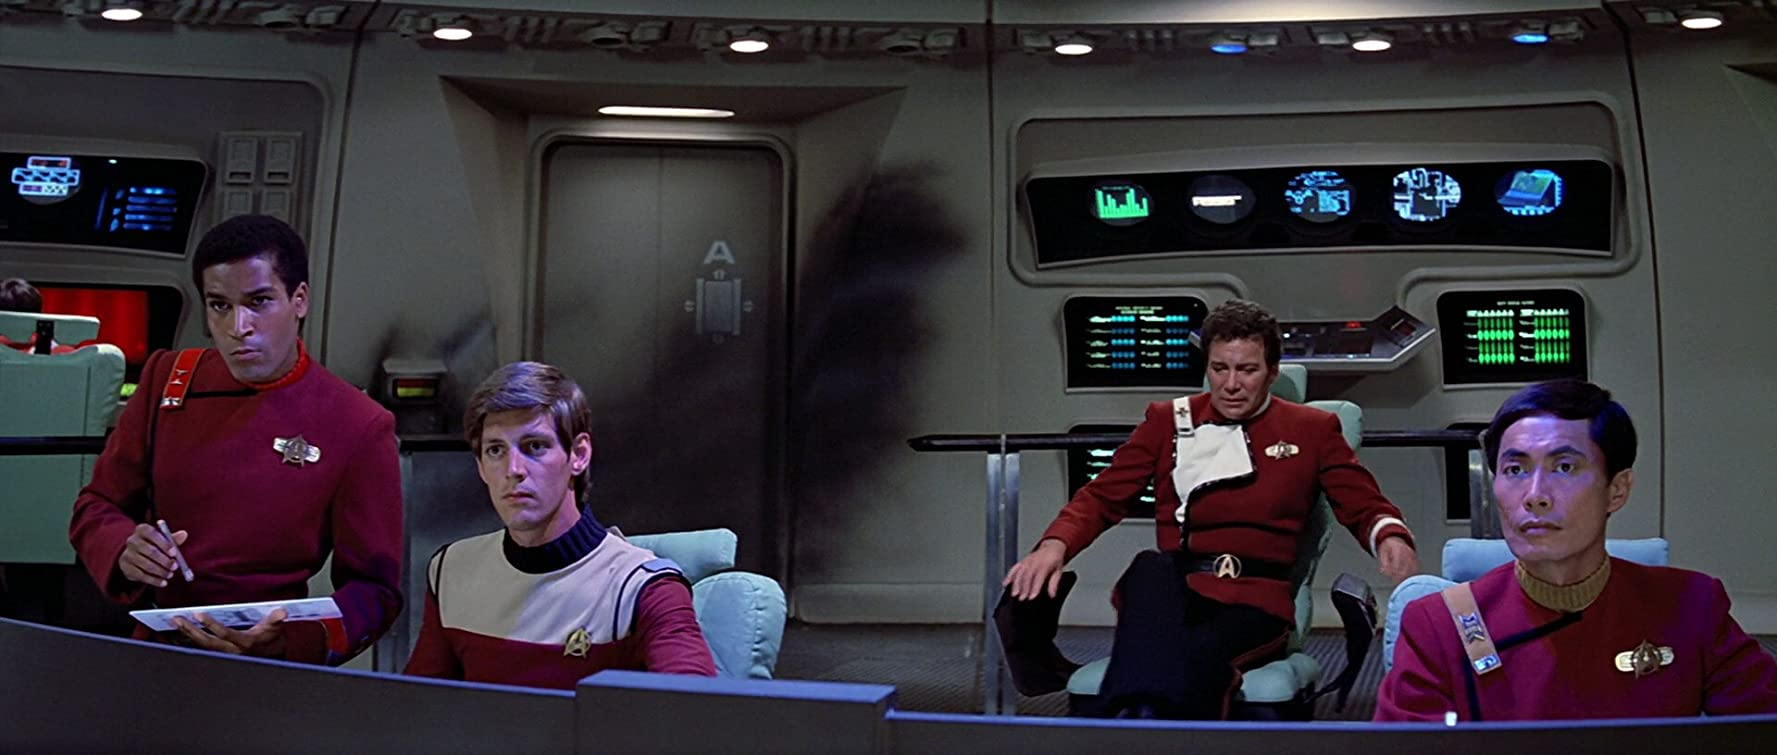 William Shatner, George Takei, and Phil Morris in Star Trek III: The Search for Spock (1984)